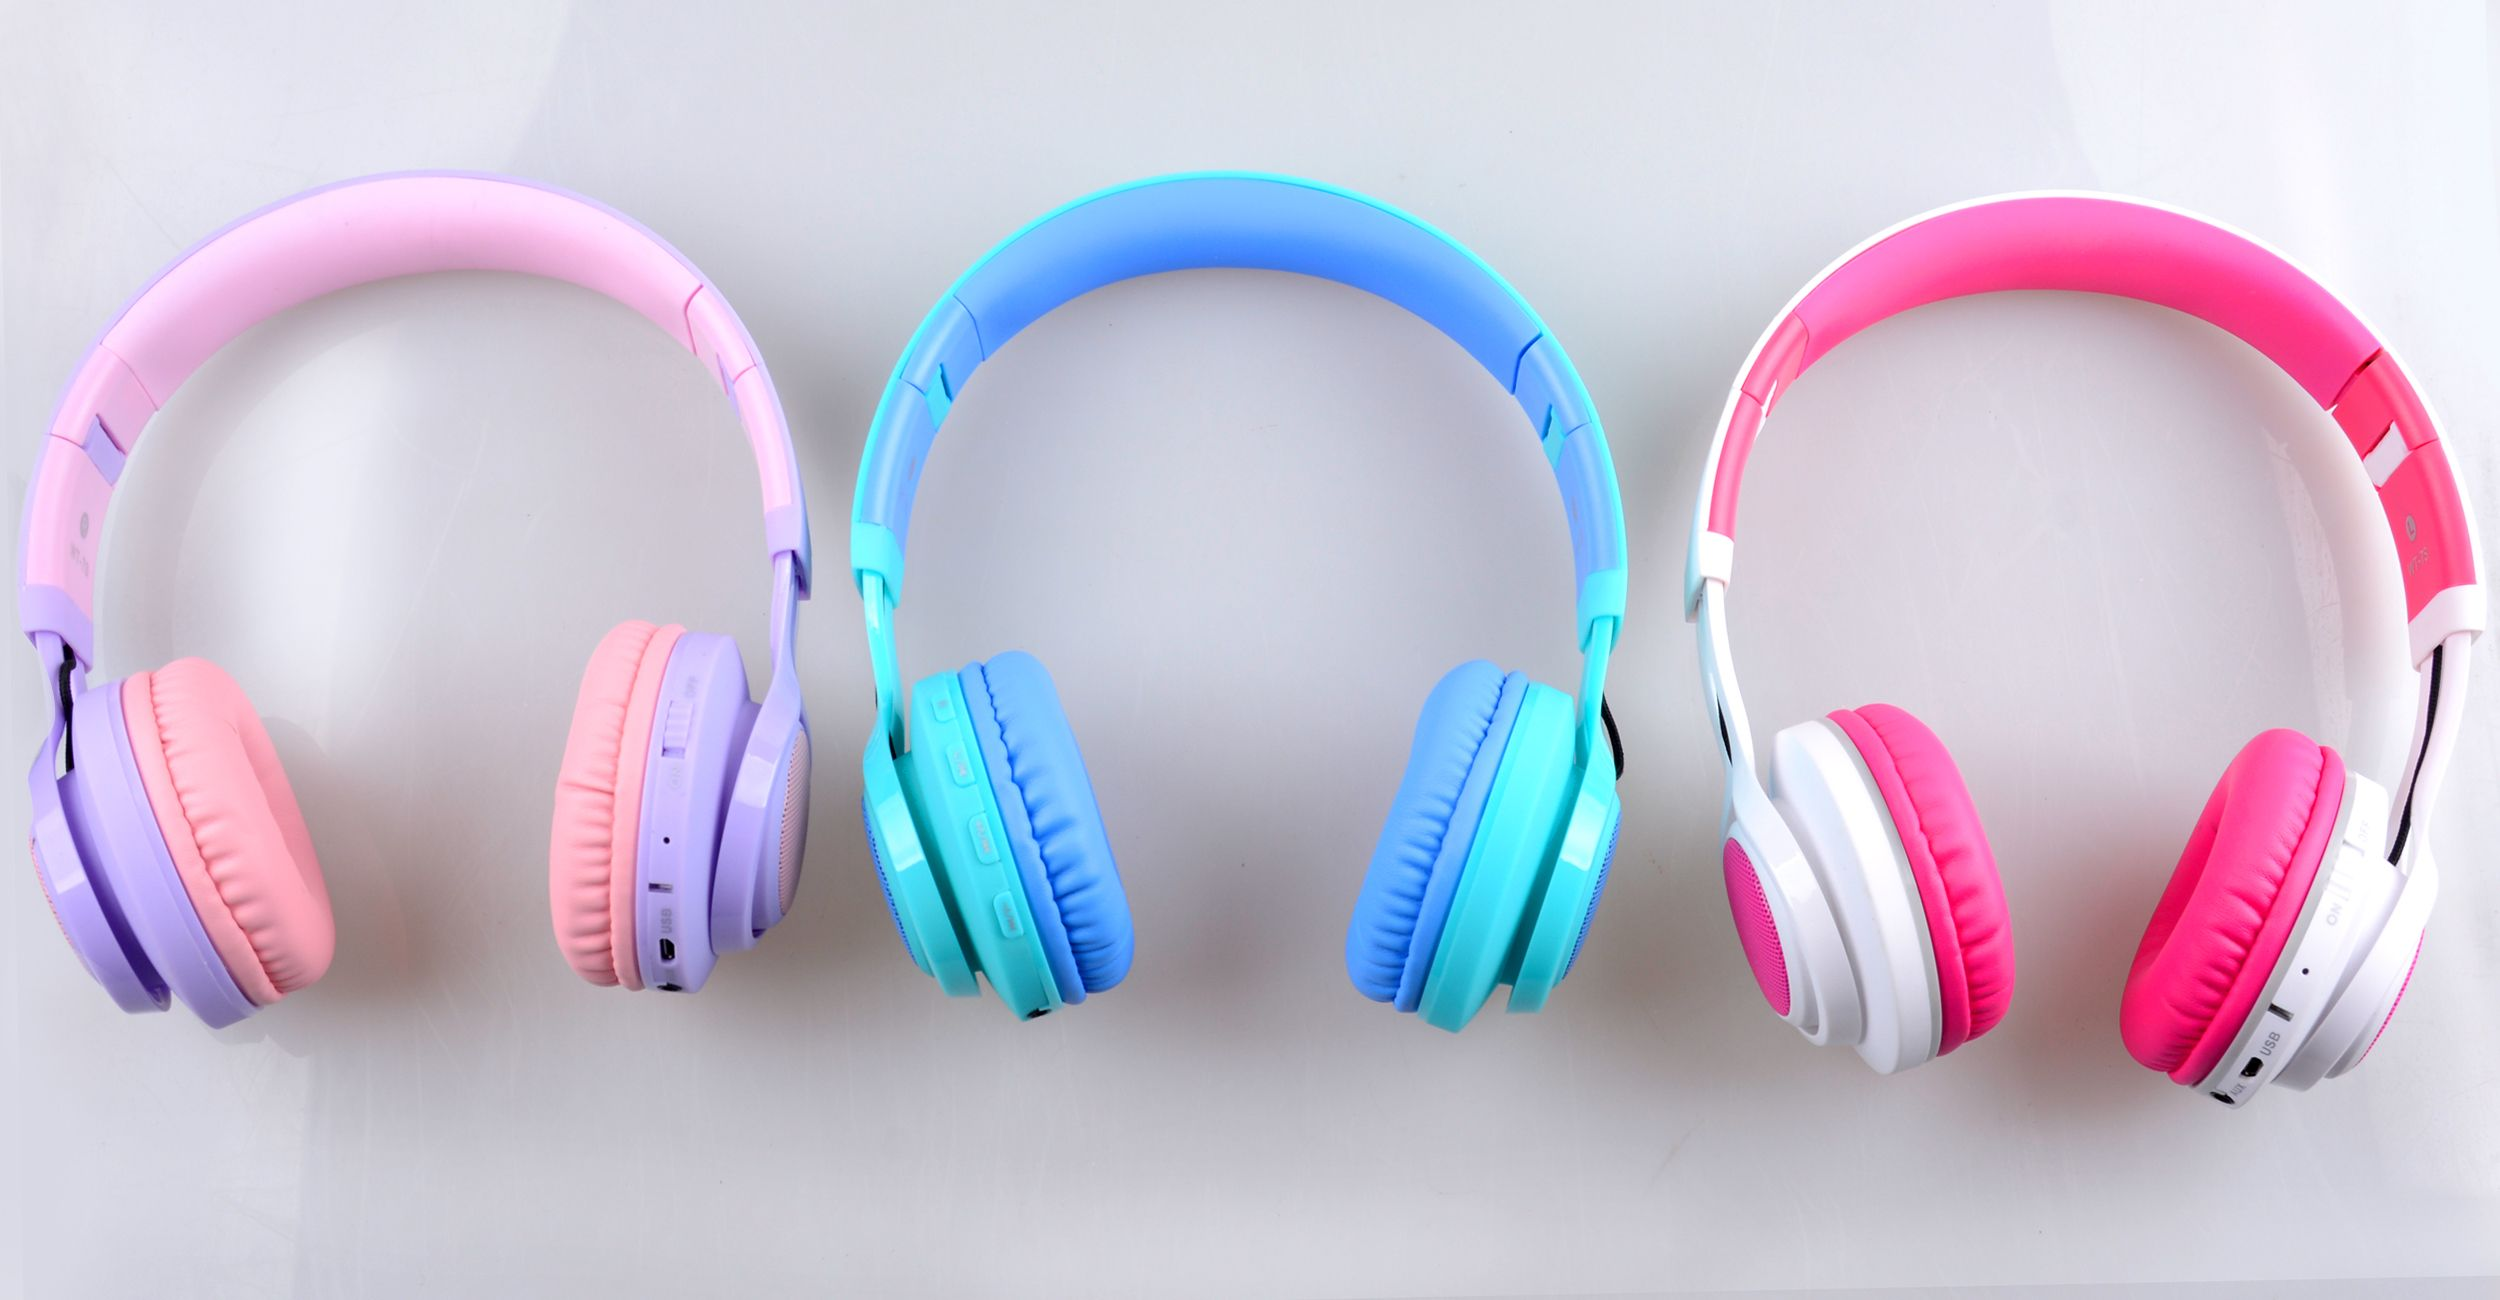 97b54e8aa3b #fashionshopping #kidsheadphones #girls headphones #bluetooth headphones  for kids #girlsheadphones #pink headphones #kidspresents